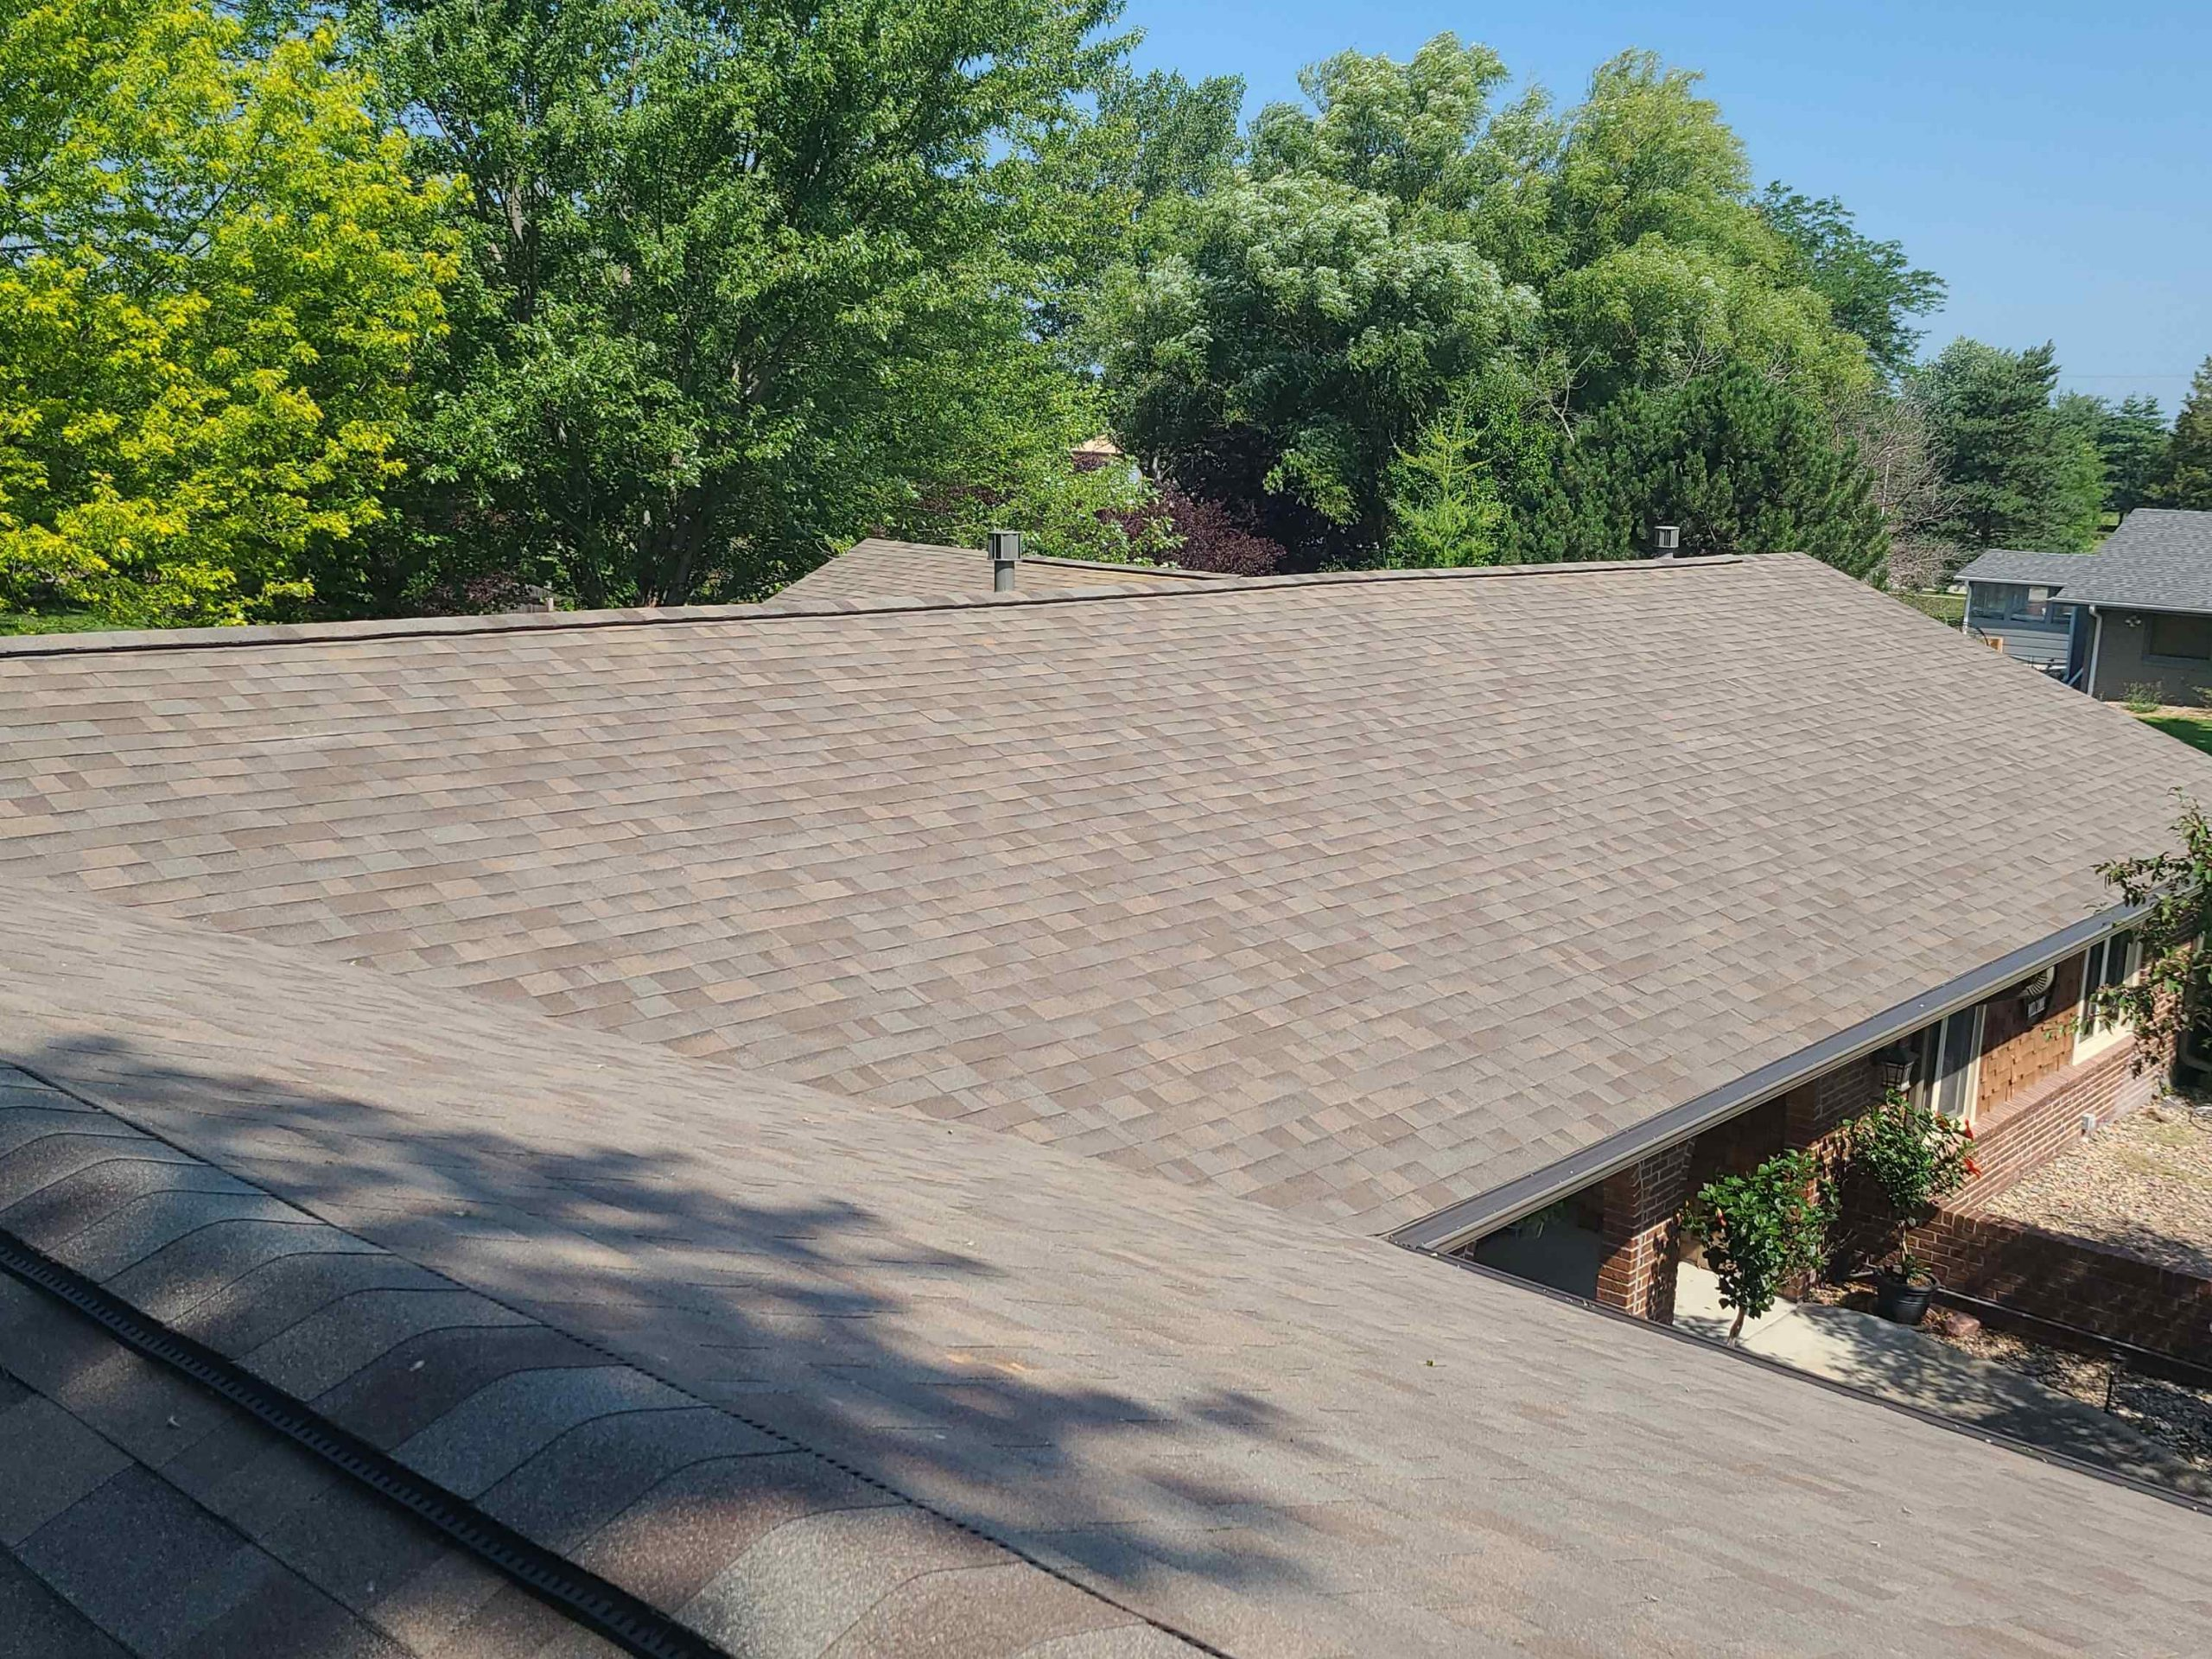 New Roof, Gutters, and Gutter Toppers